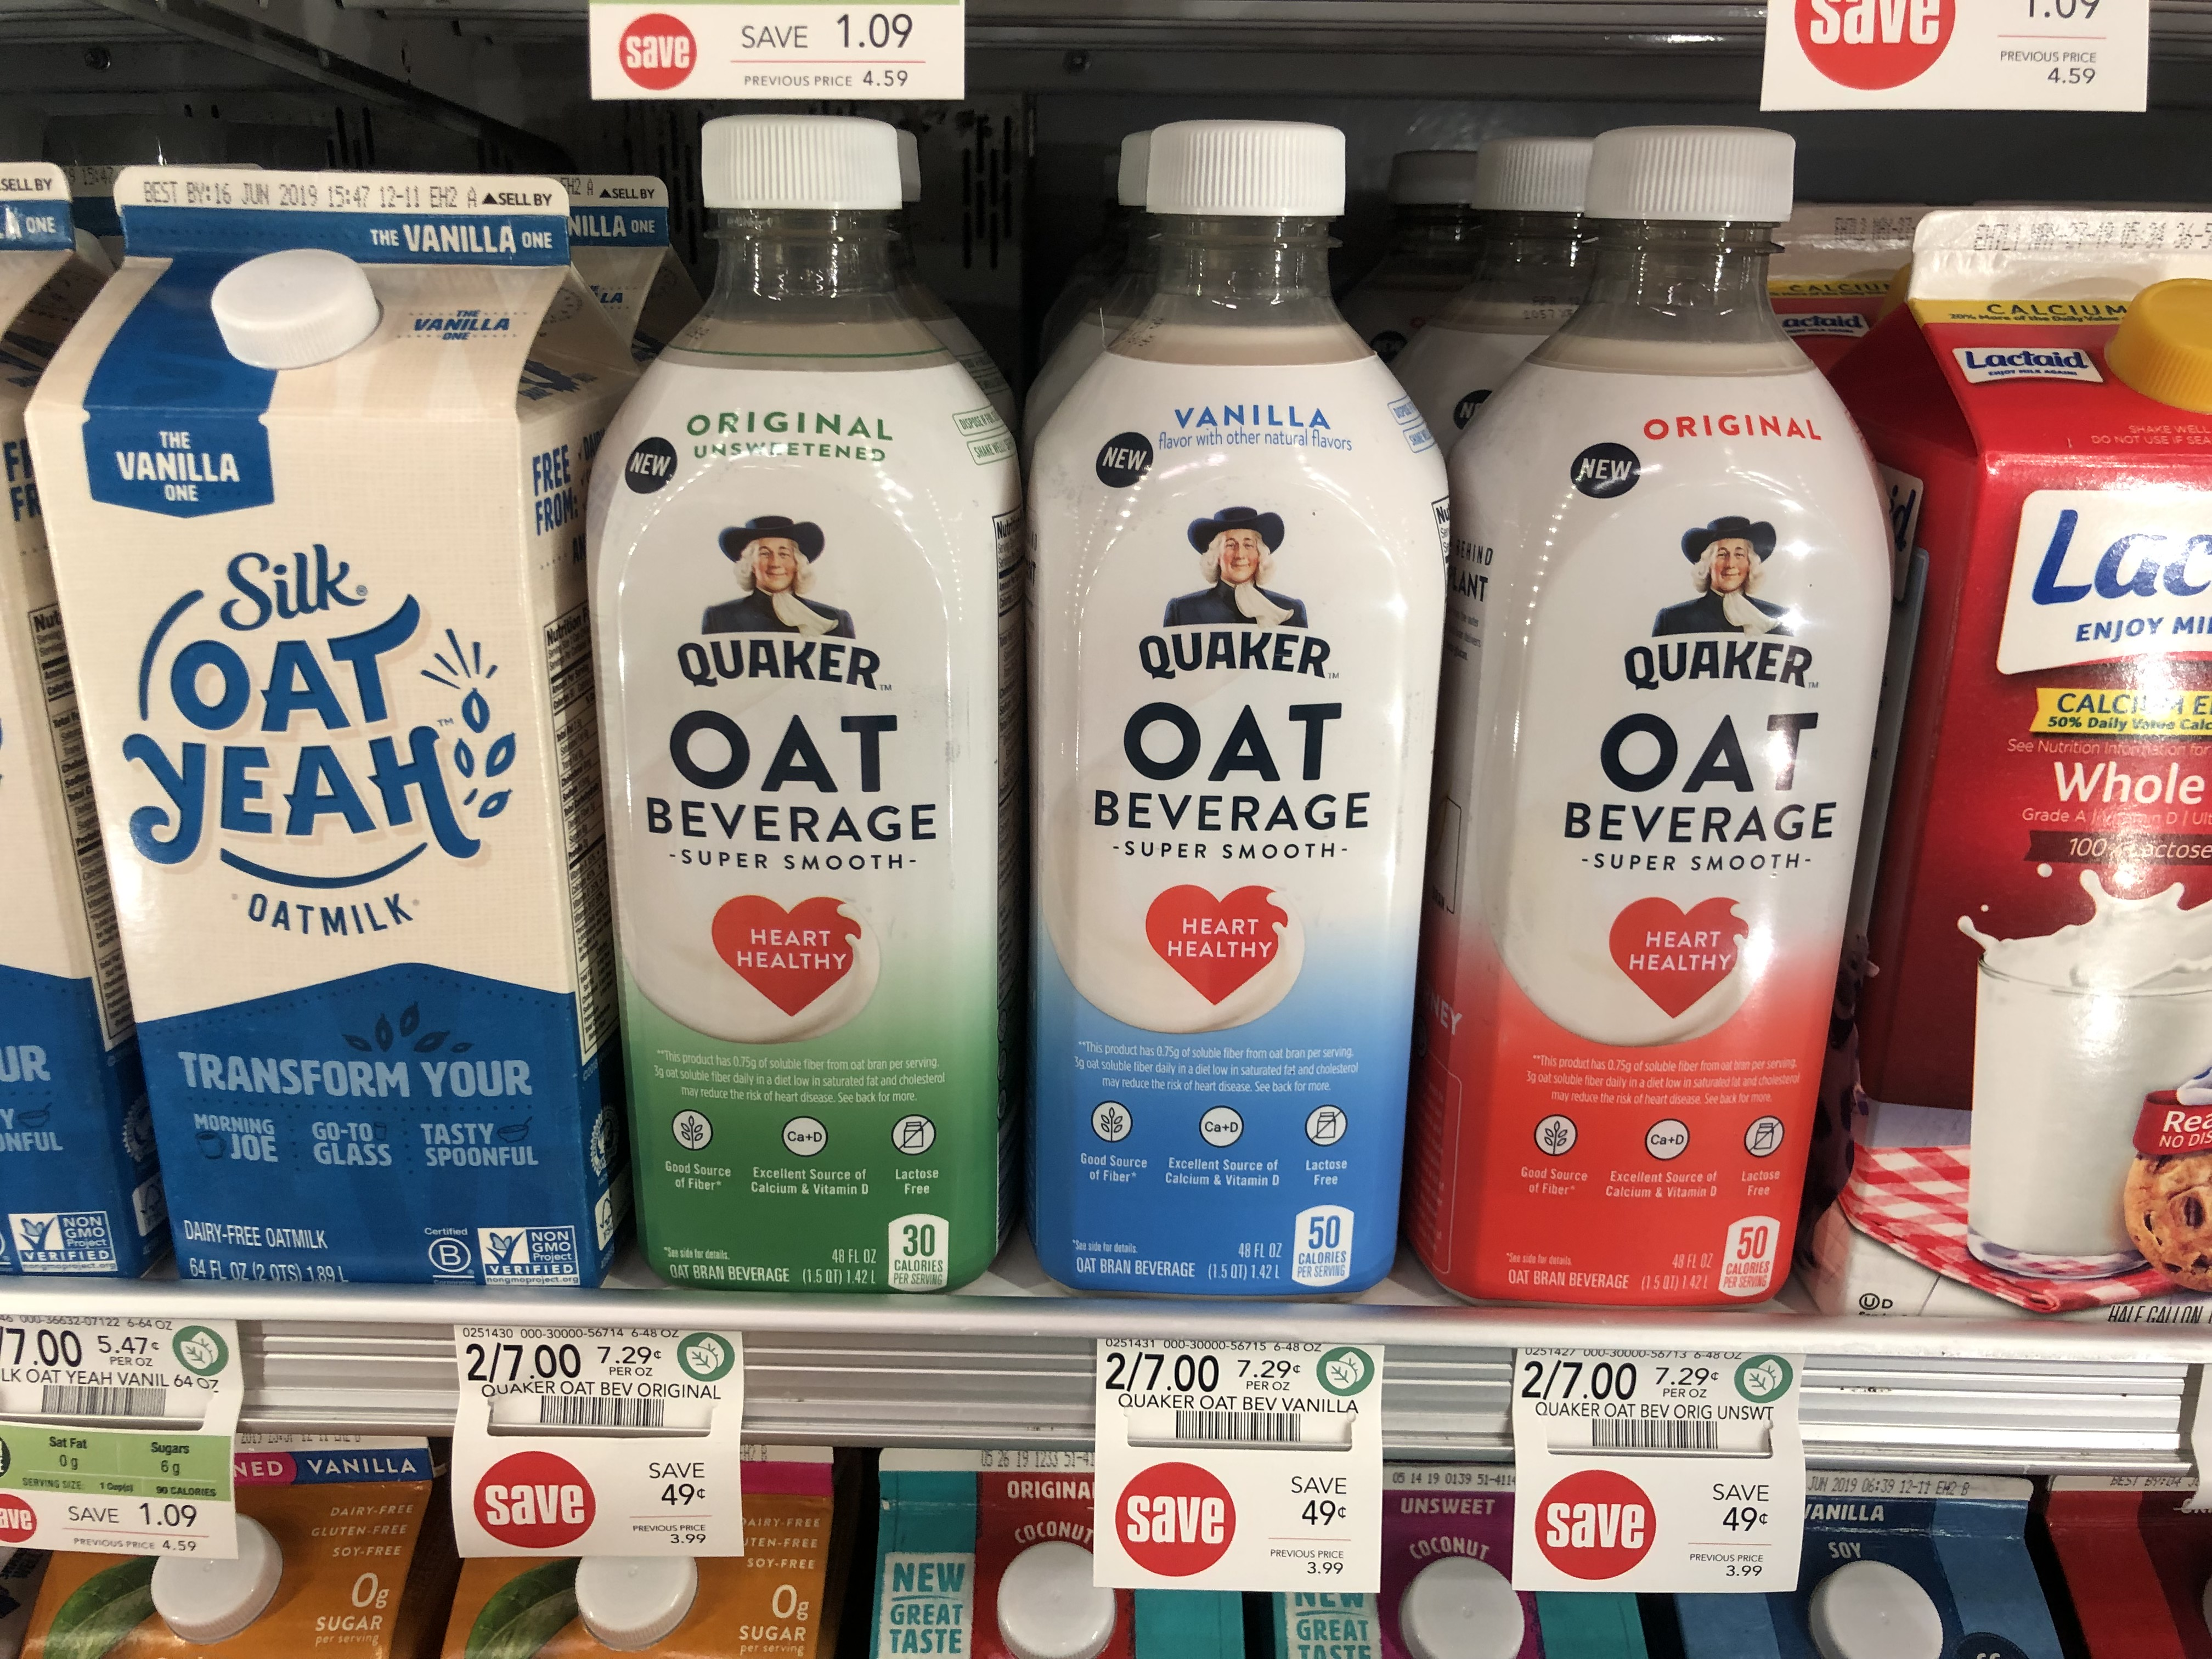 Quaker Oat Beverage Only $1.50 At Publix 1